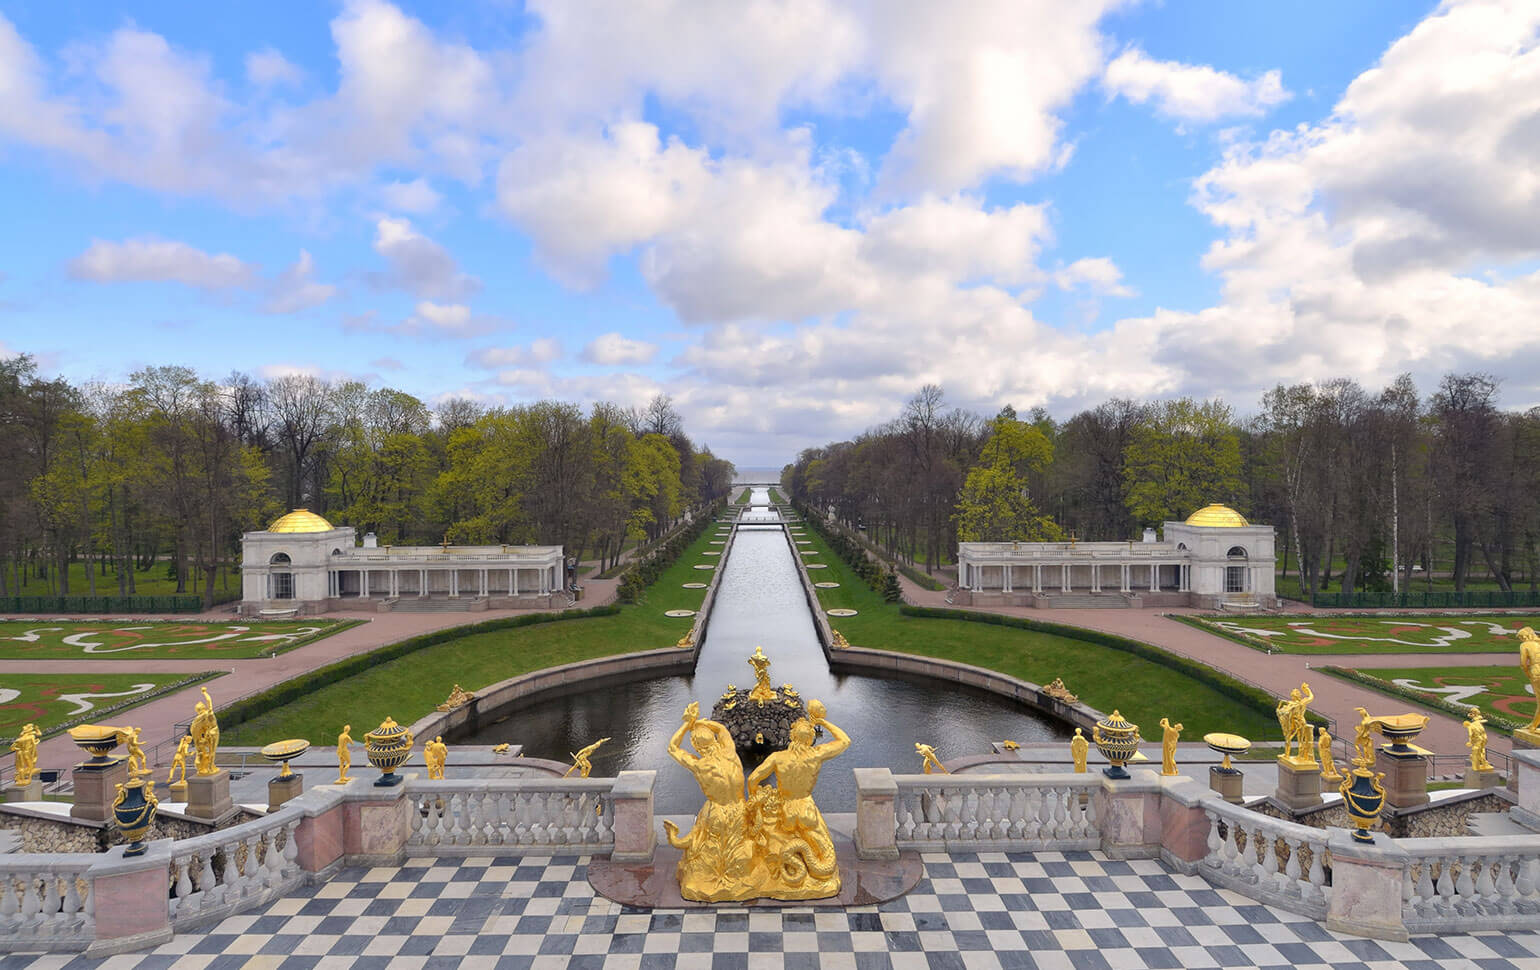 Peterhof Palace Gardens In Saint Petersburg, Russia